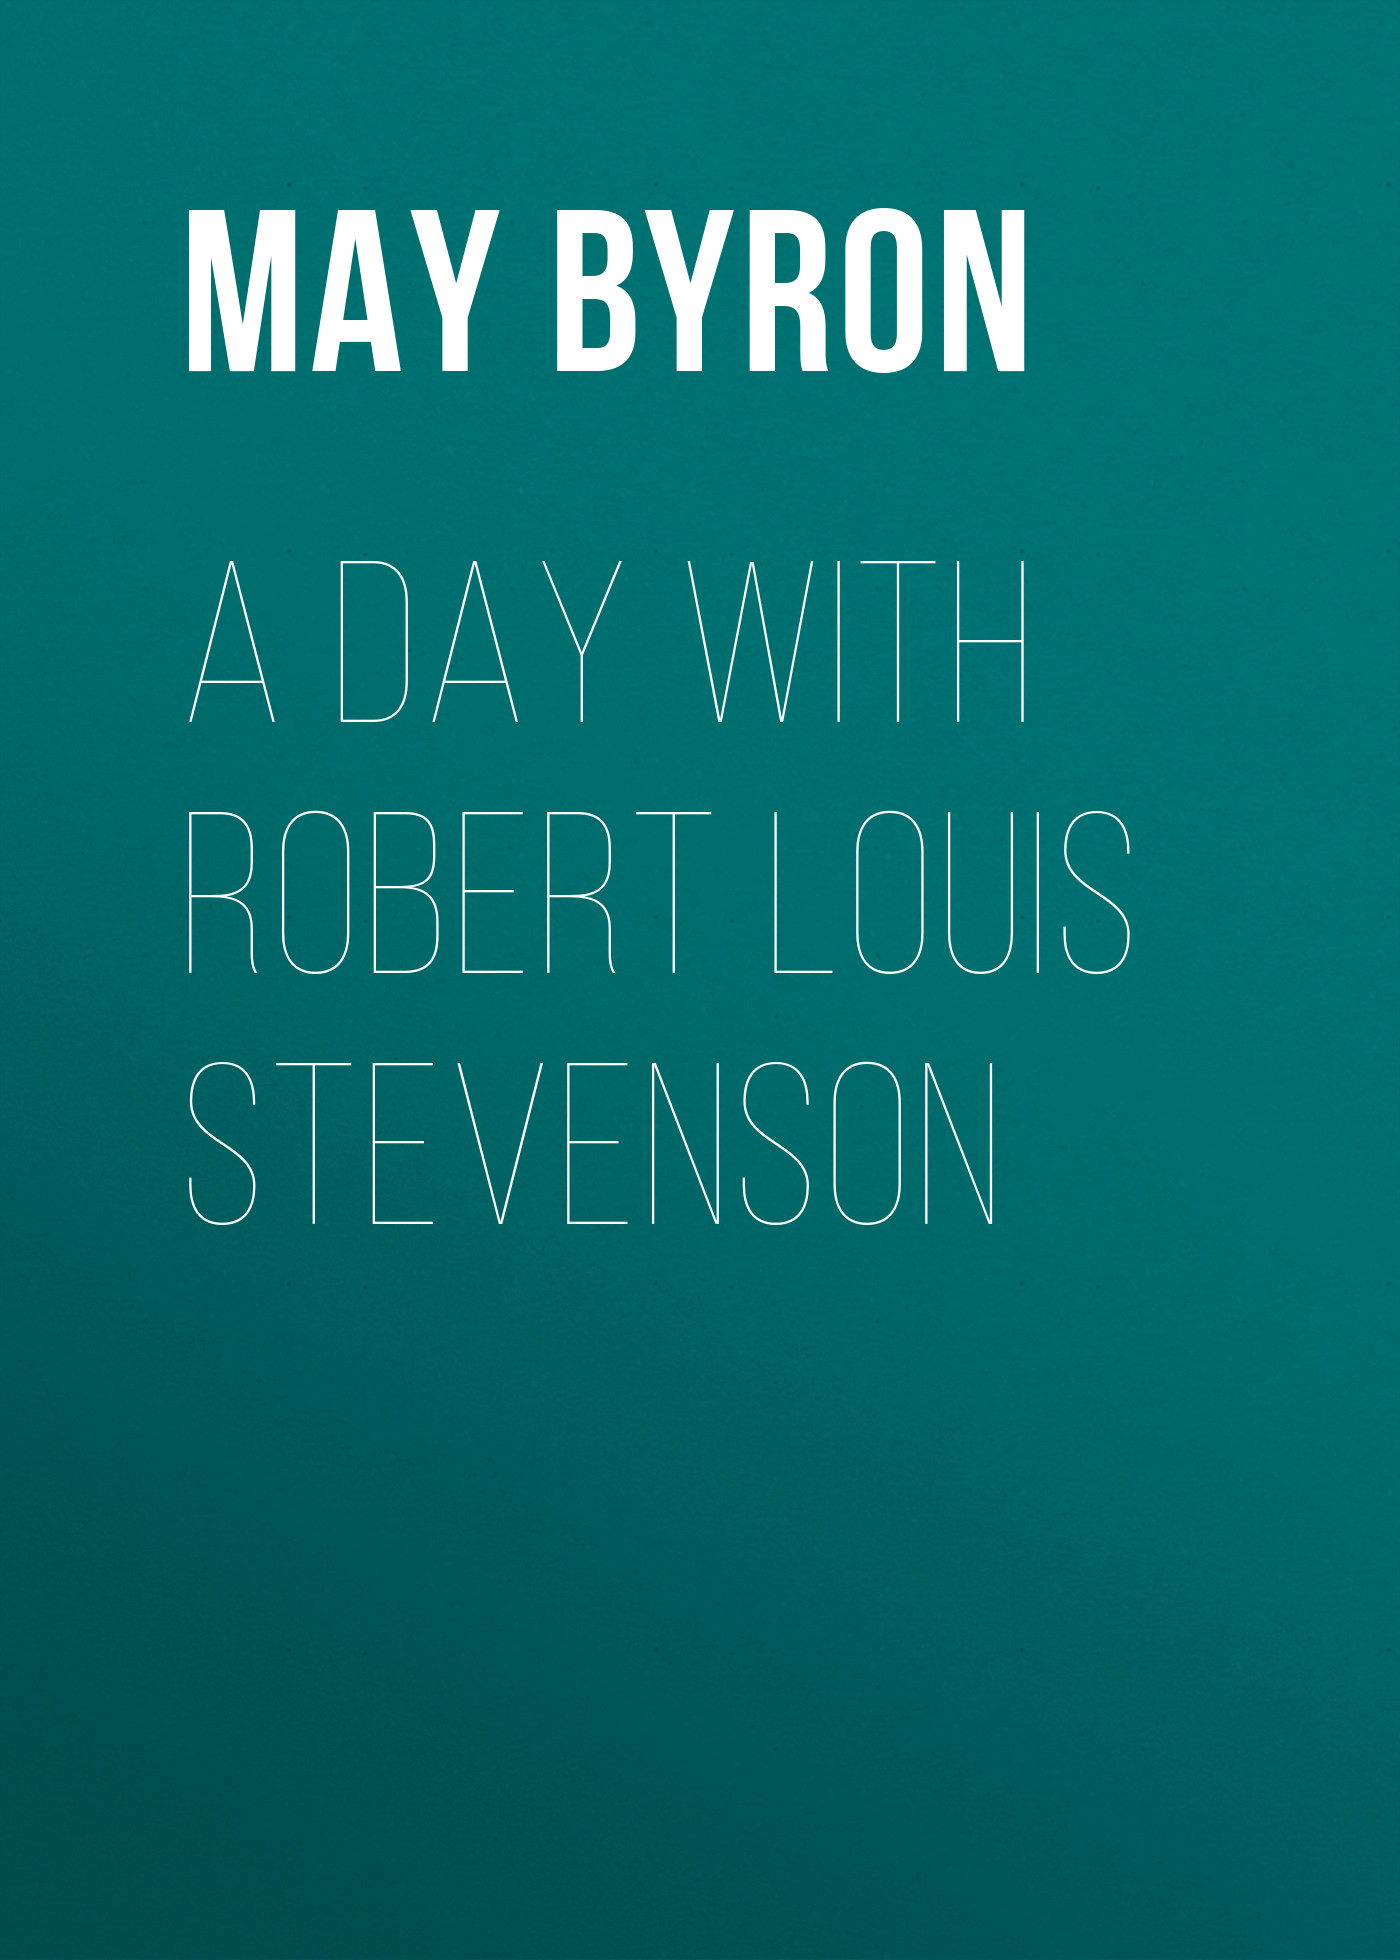 лучшая цена Byron May Clarissa Gillington A Day with Robert Louis Stevenson